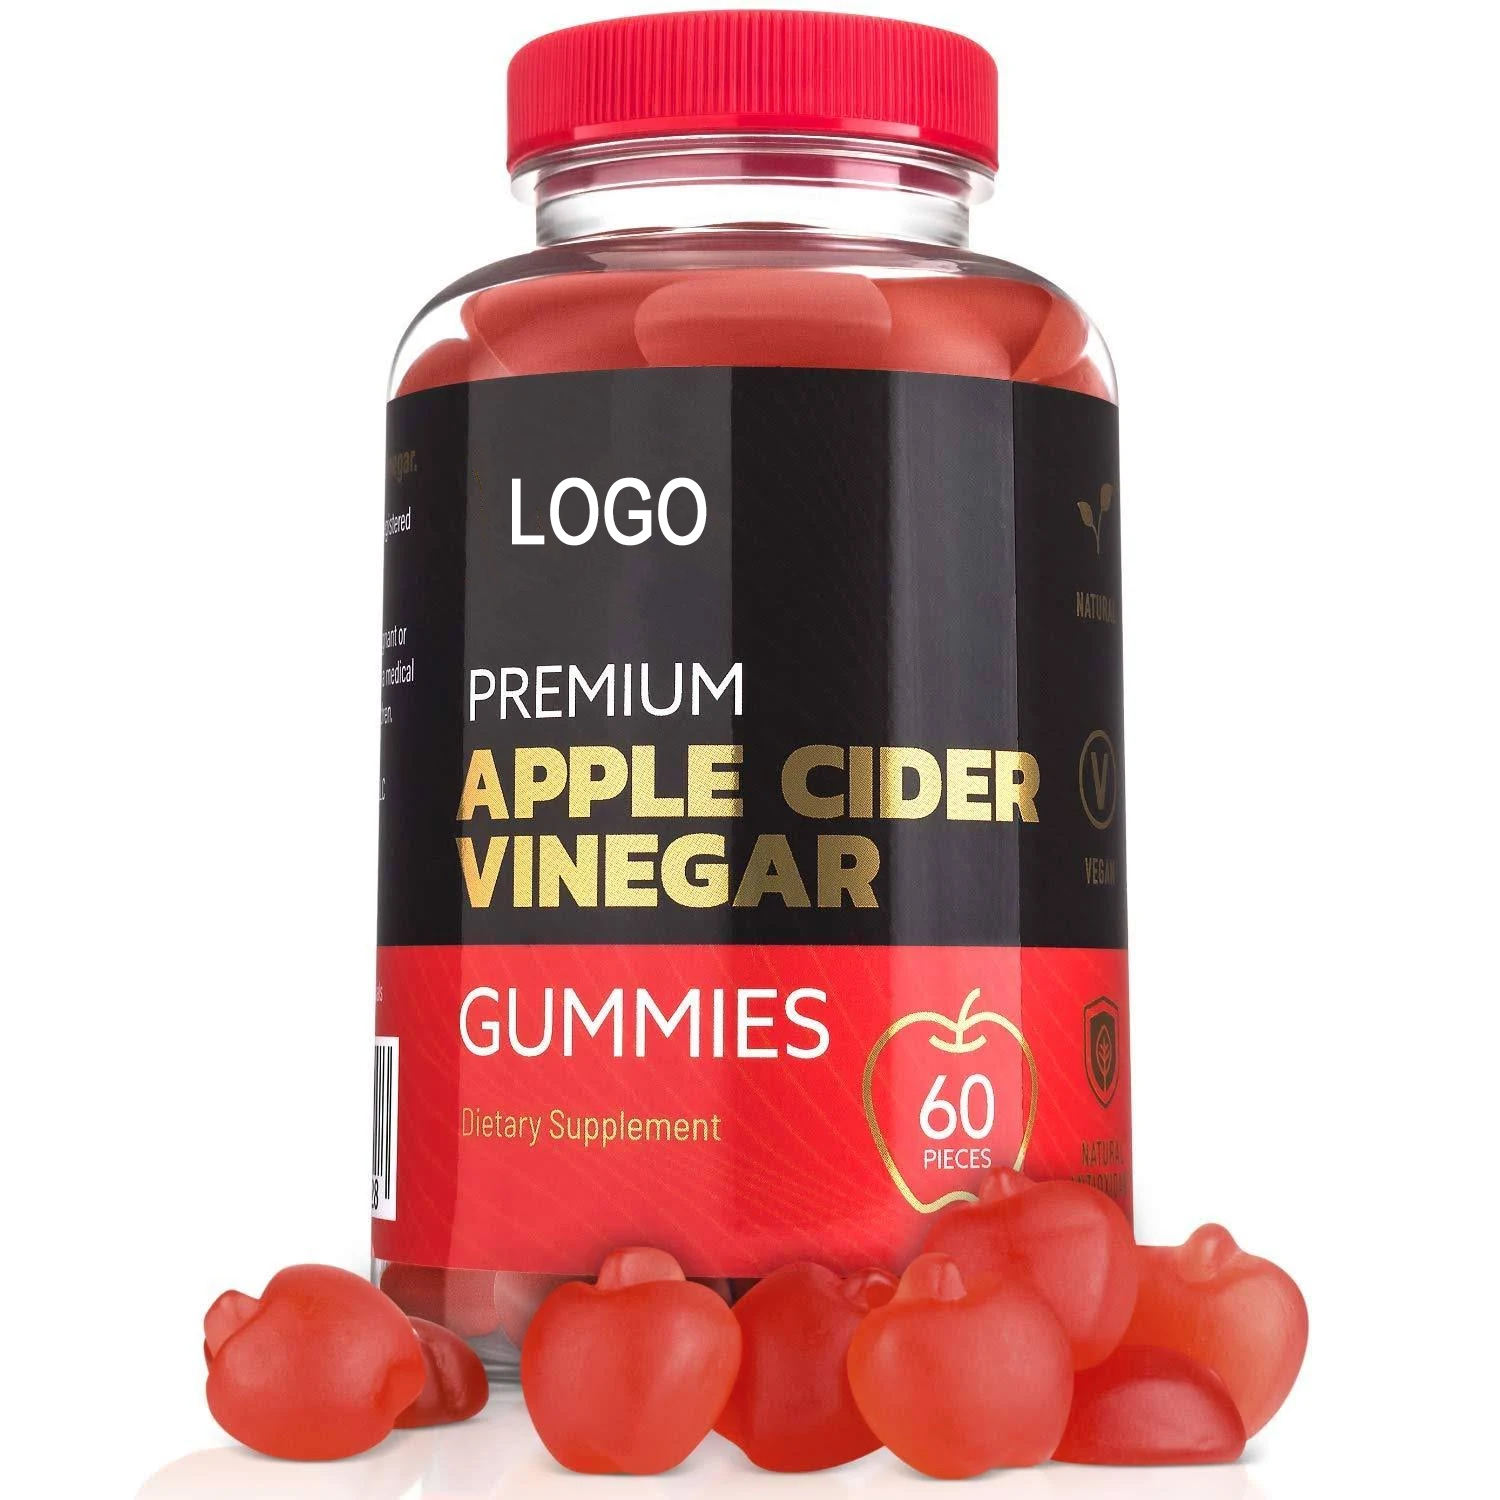 Slimming Herbal Supplements Apple Cider Vinegar Gummies Weight Loss Gummies